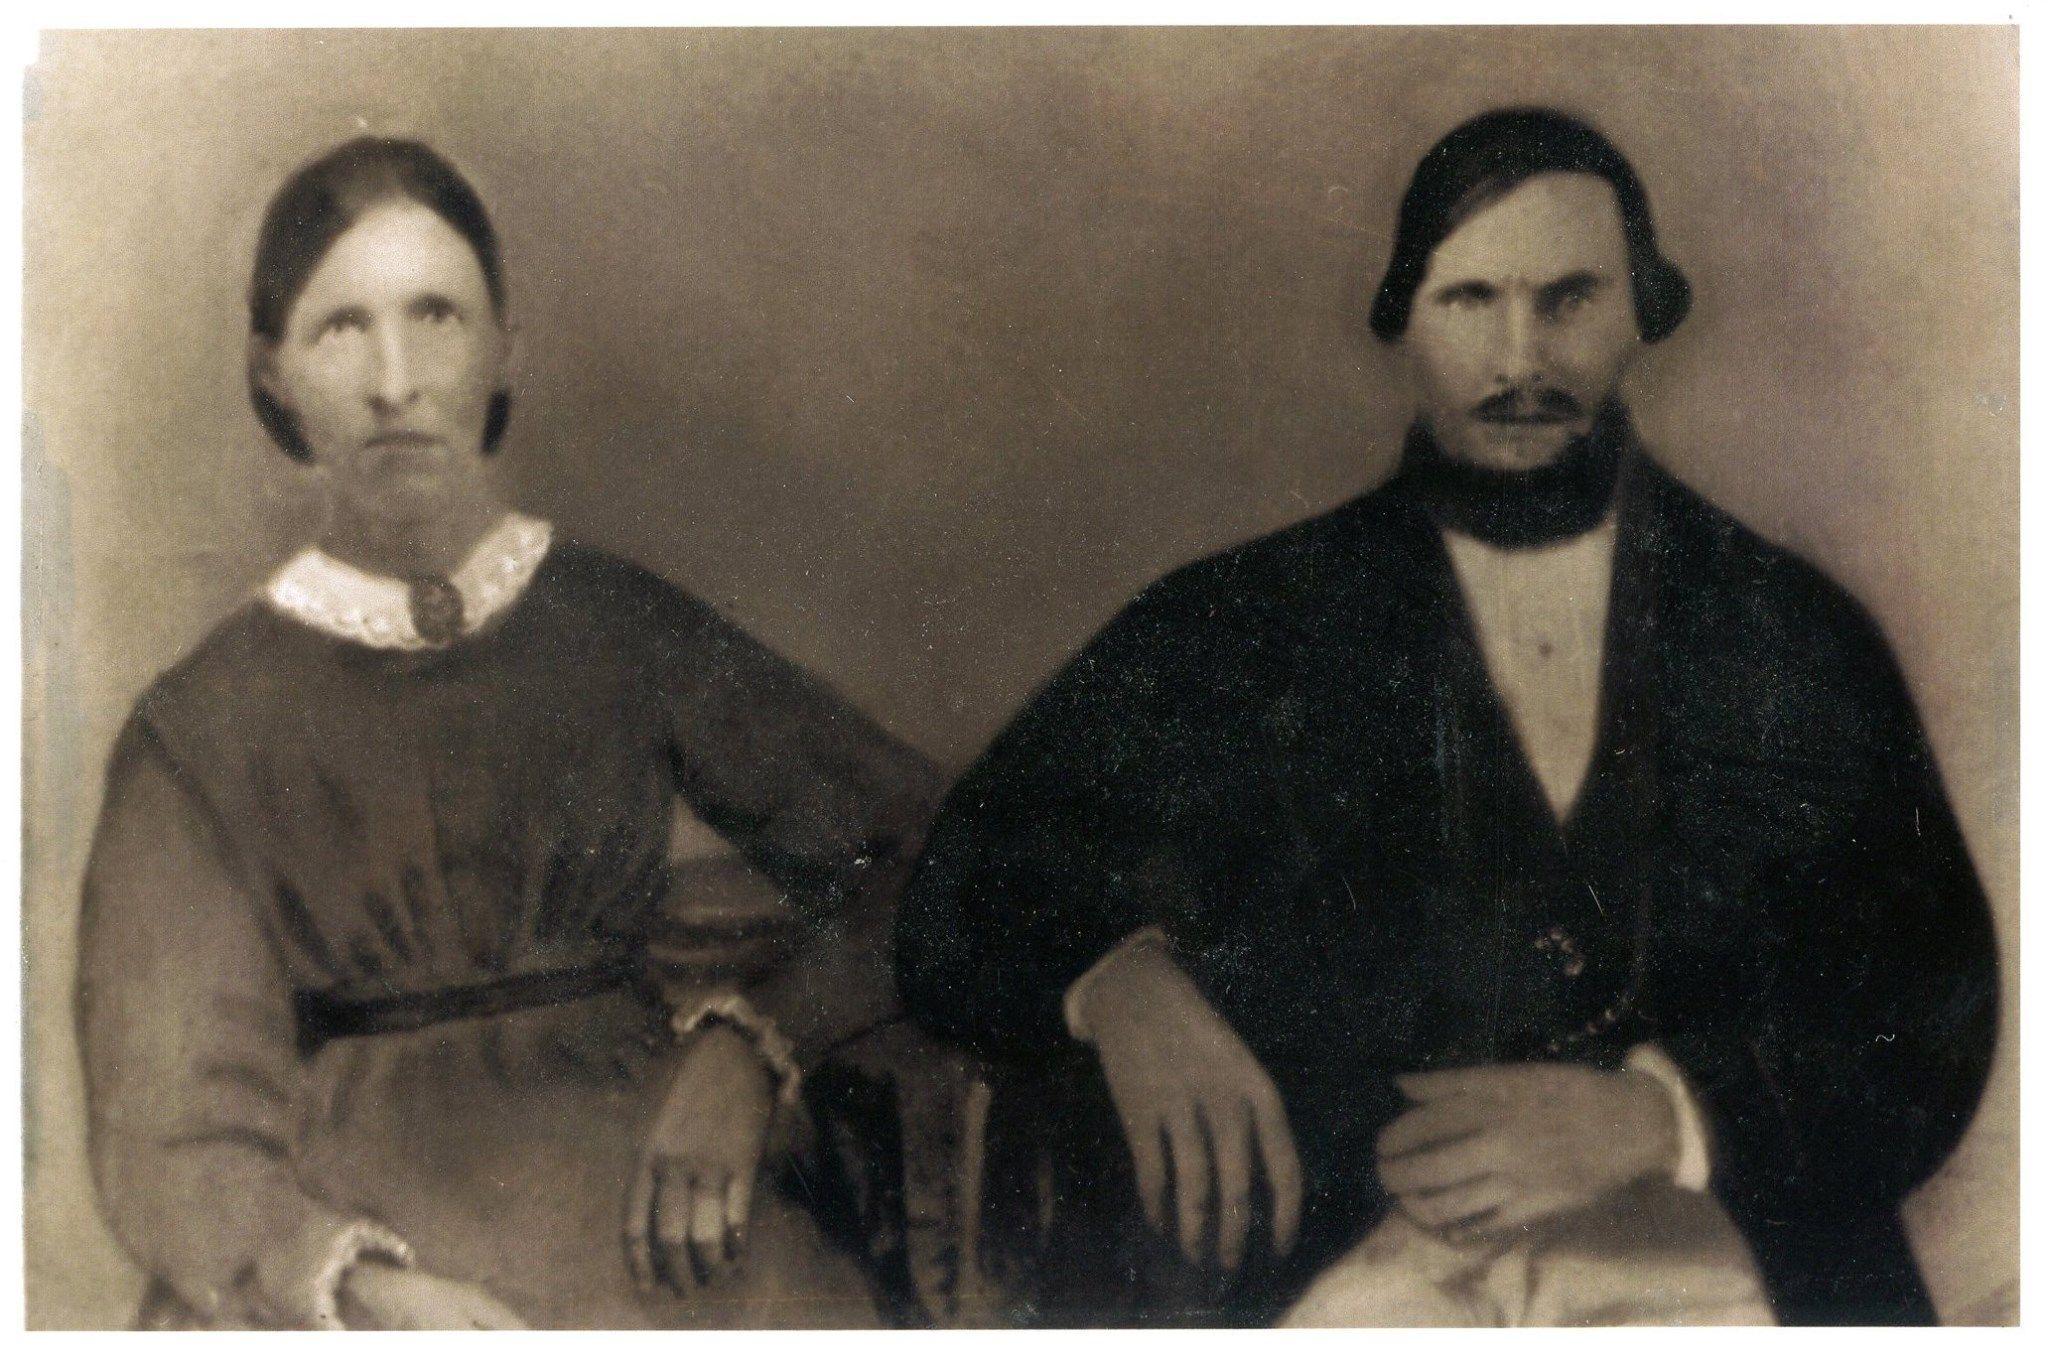 Anne and John Turner in mid 1800's. The Turners filed claim to land in 1855 in the area that would become Umatilla. They were one of only a handful of families living in the wilds.